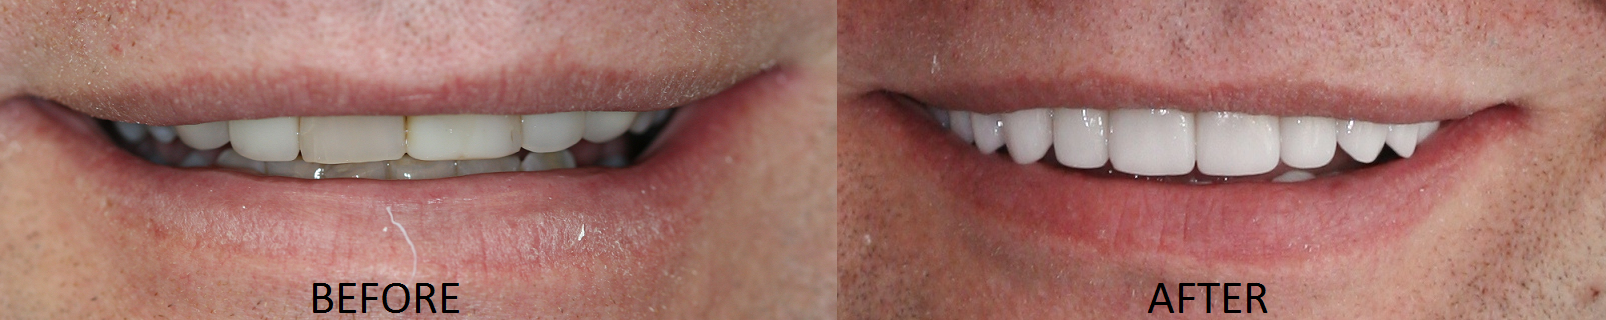 Dr. Soberay's LVI Neuromuscular Full Mouth Restoration Patient Before and After Photos